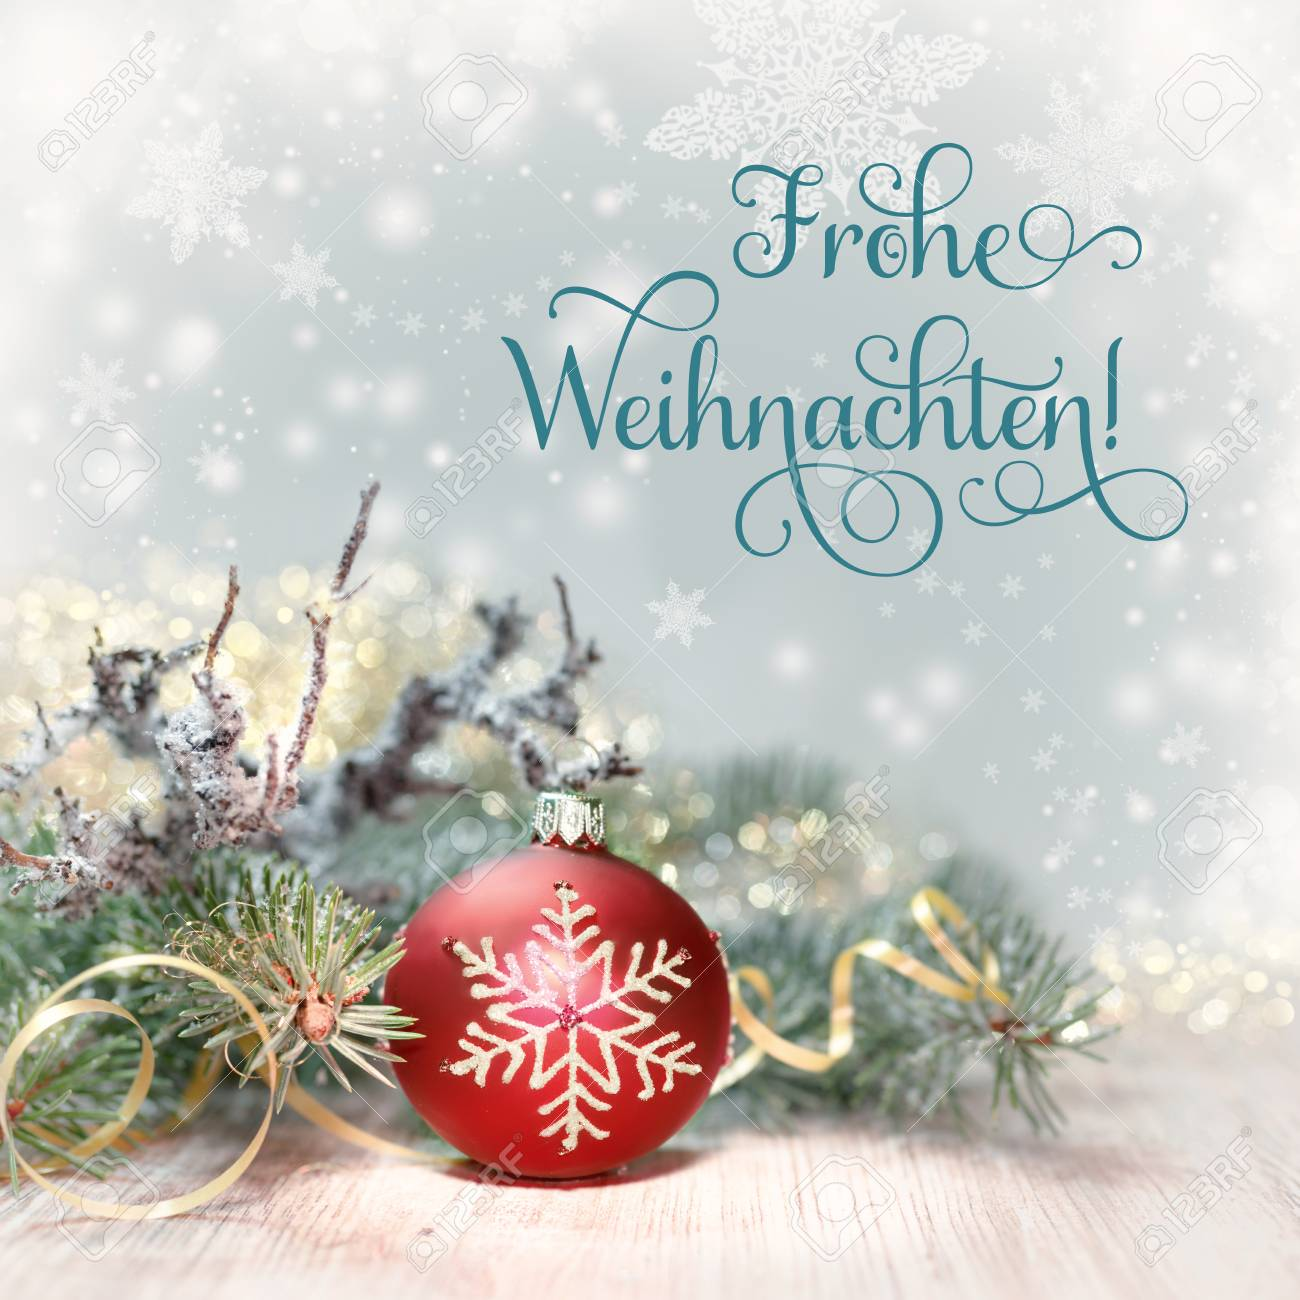 Bilder Frohe Weihnachten Merry Christmas.Christmas Tree And Red Bauble On Abstract Winter Background